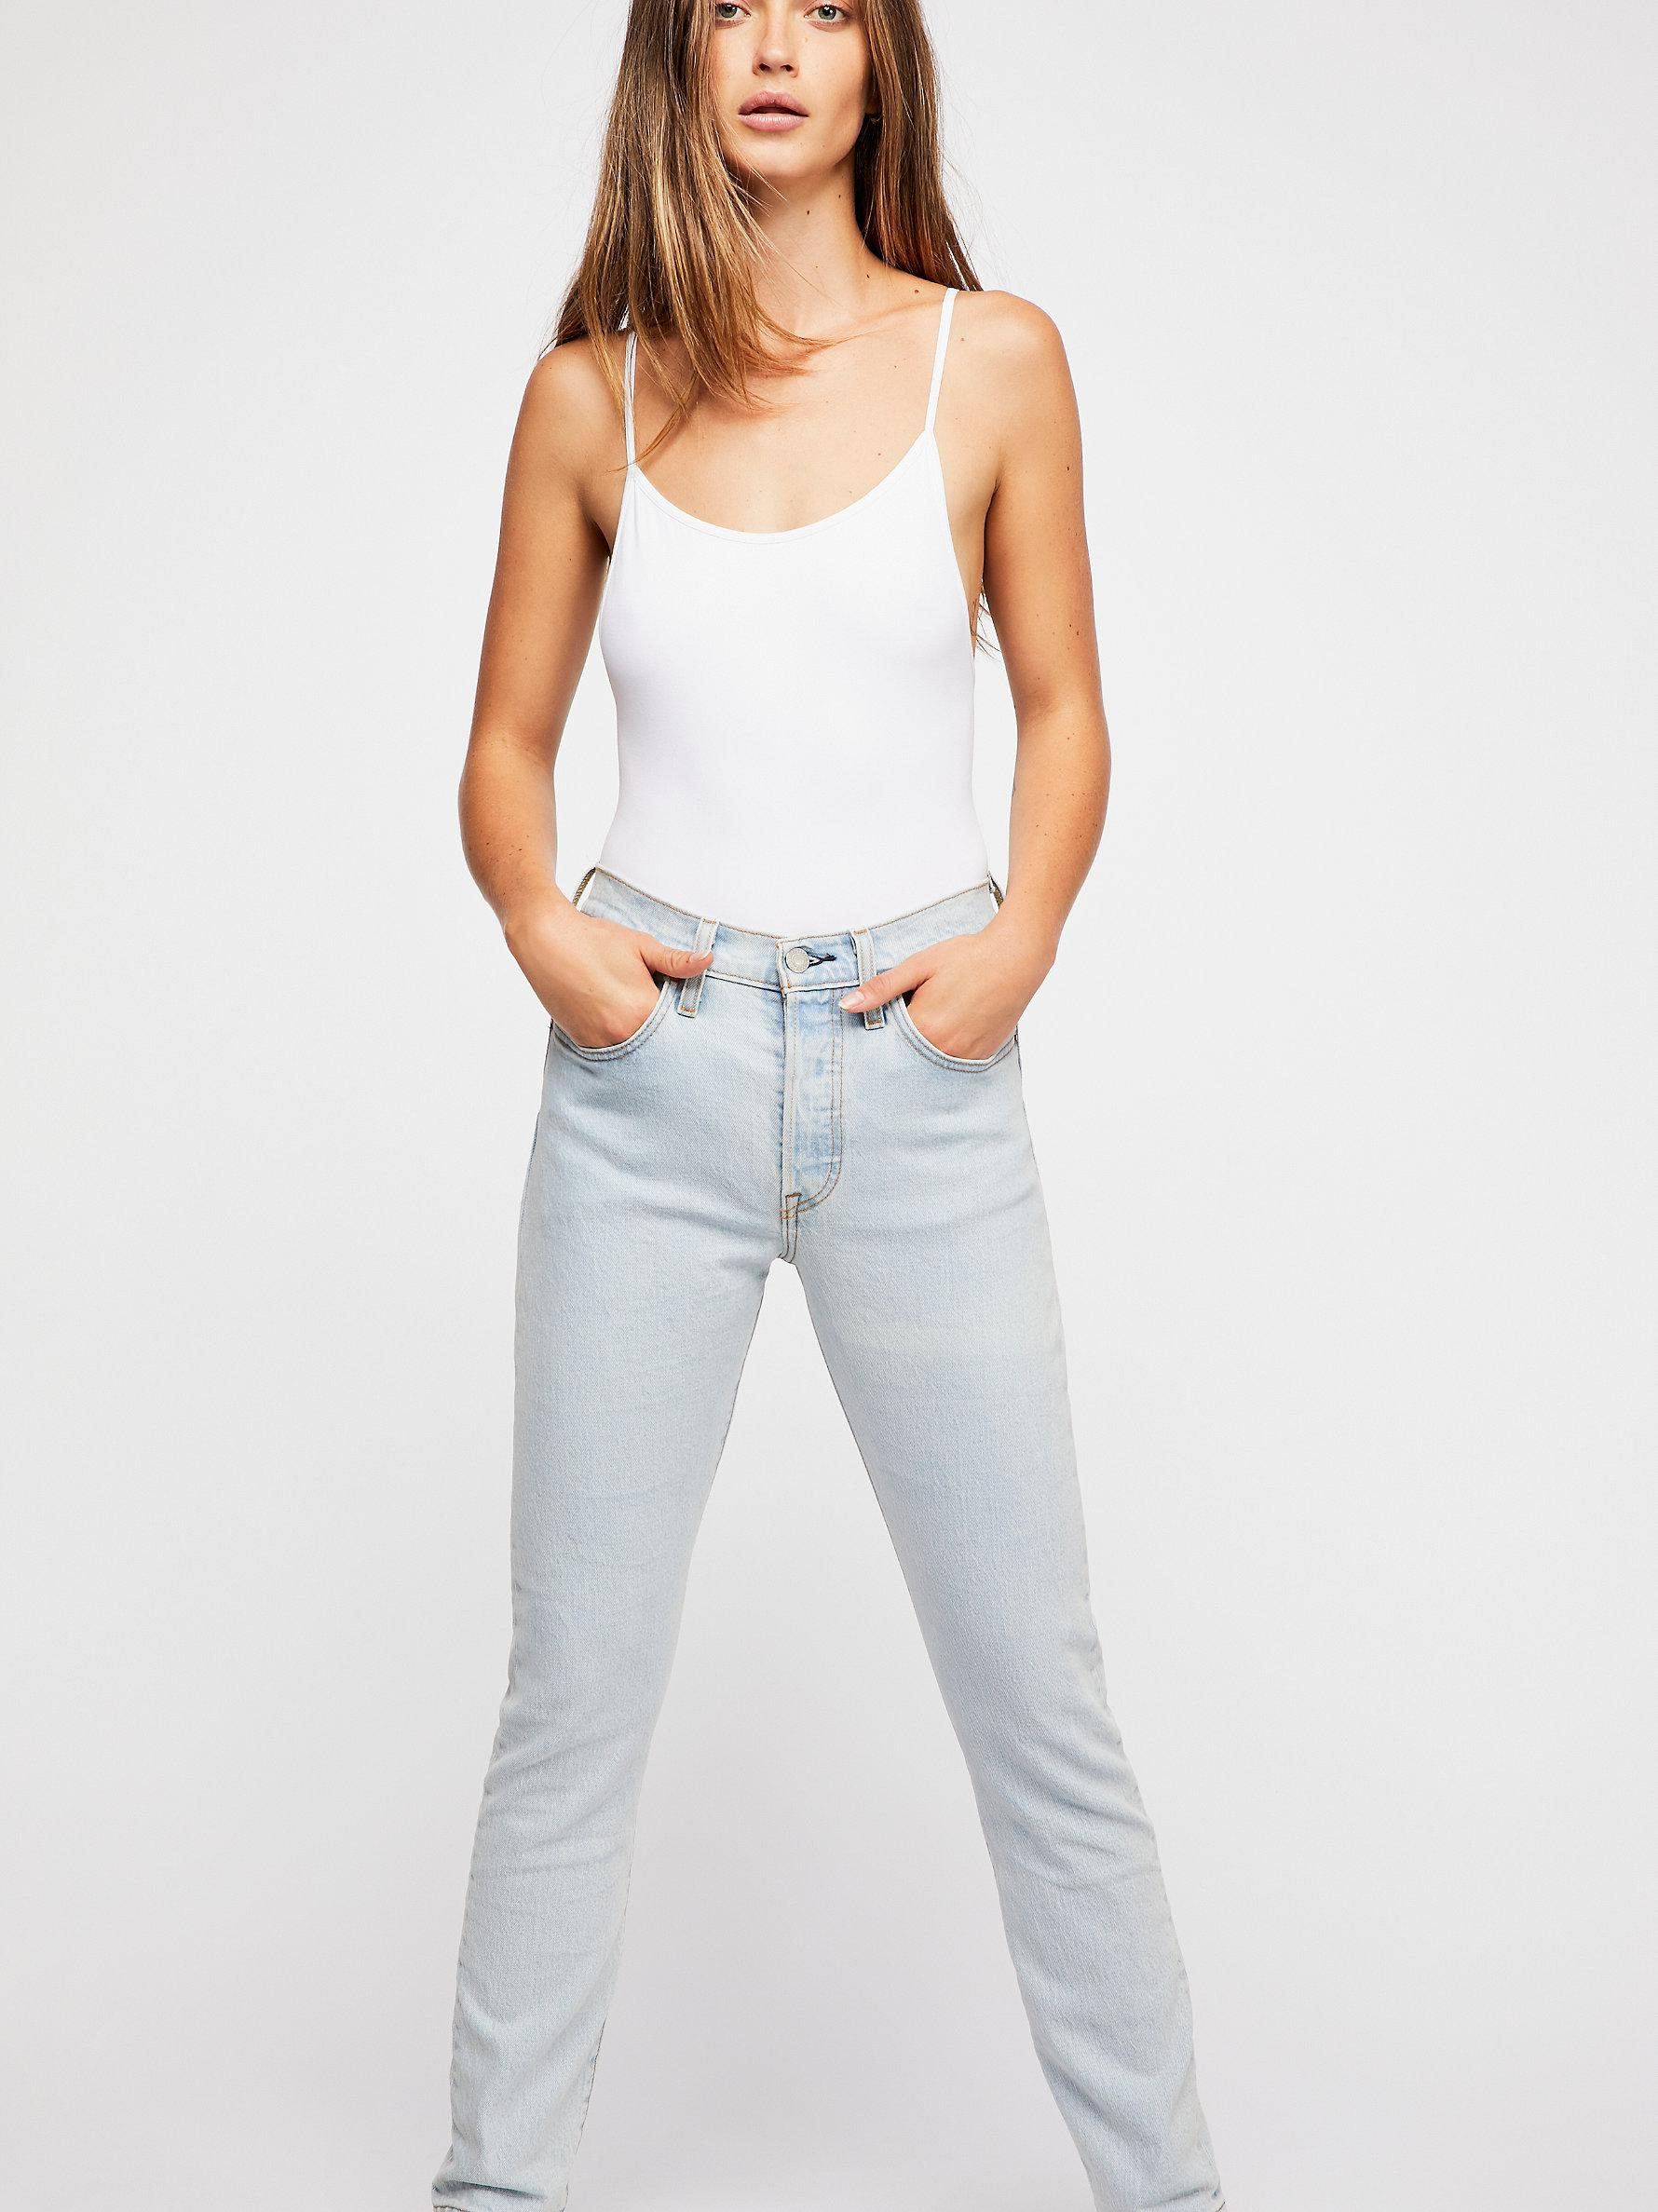 b74a55dd7dc Free People Levi's 501 Skinny Jeans in Blue - Lyst